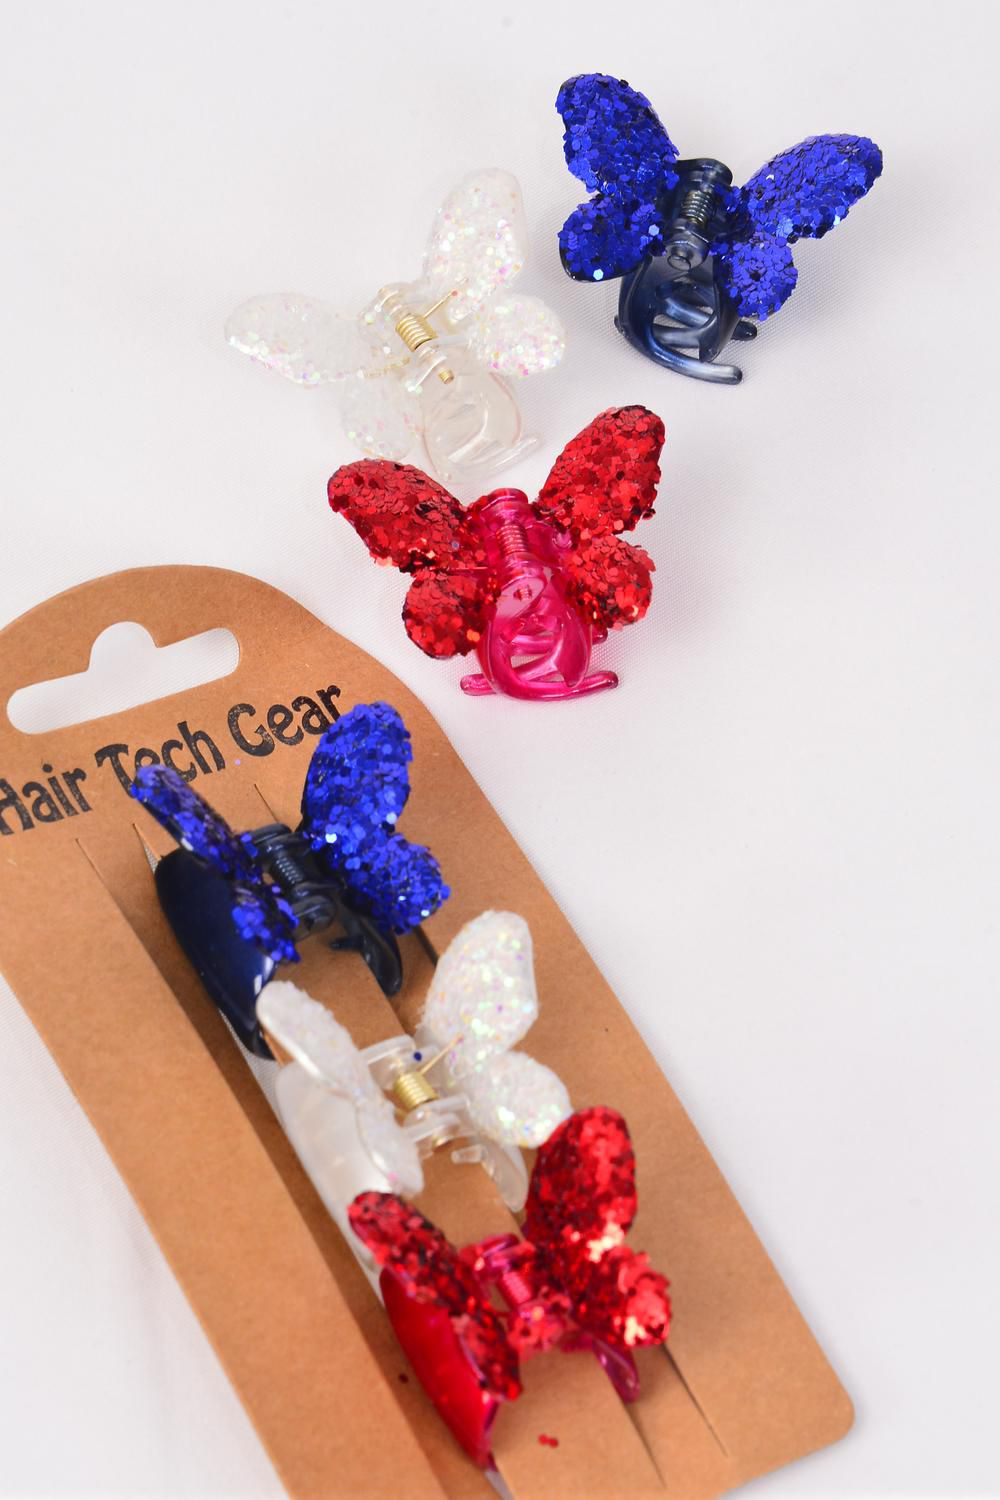 Jaw Clip Sets Butterfly Glitter 3 cm 36 pcs Red White Navy Color Asst Inner Pack of 3 /DZ Size-3 cm Pr Color Asst,Individual Display Card & Opp Bag & UPC Code